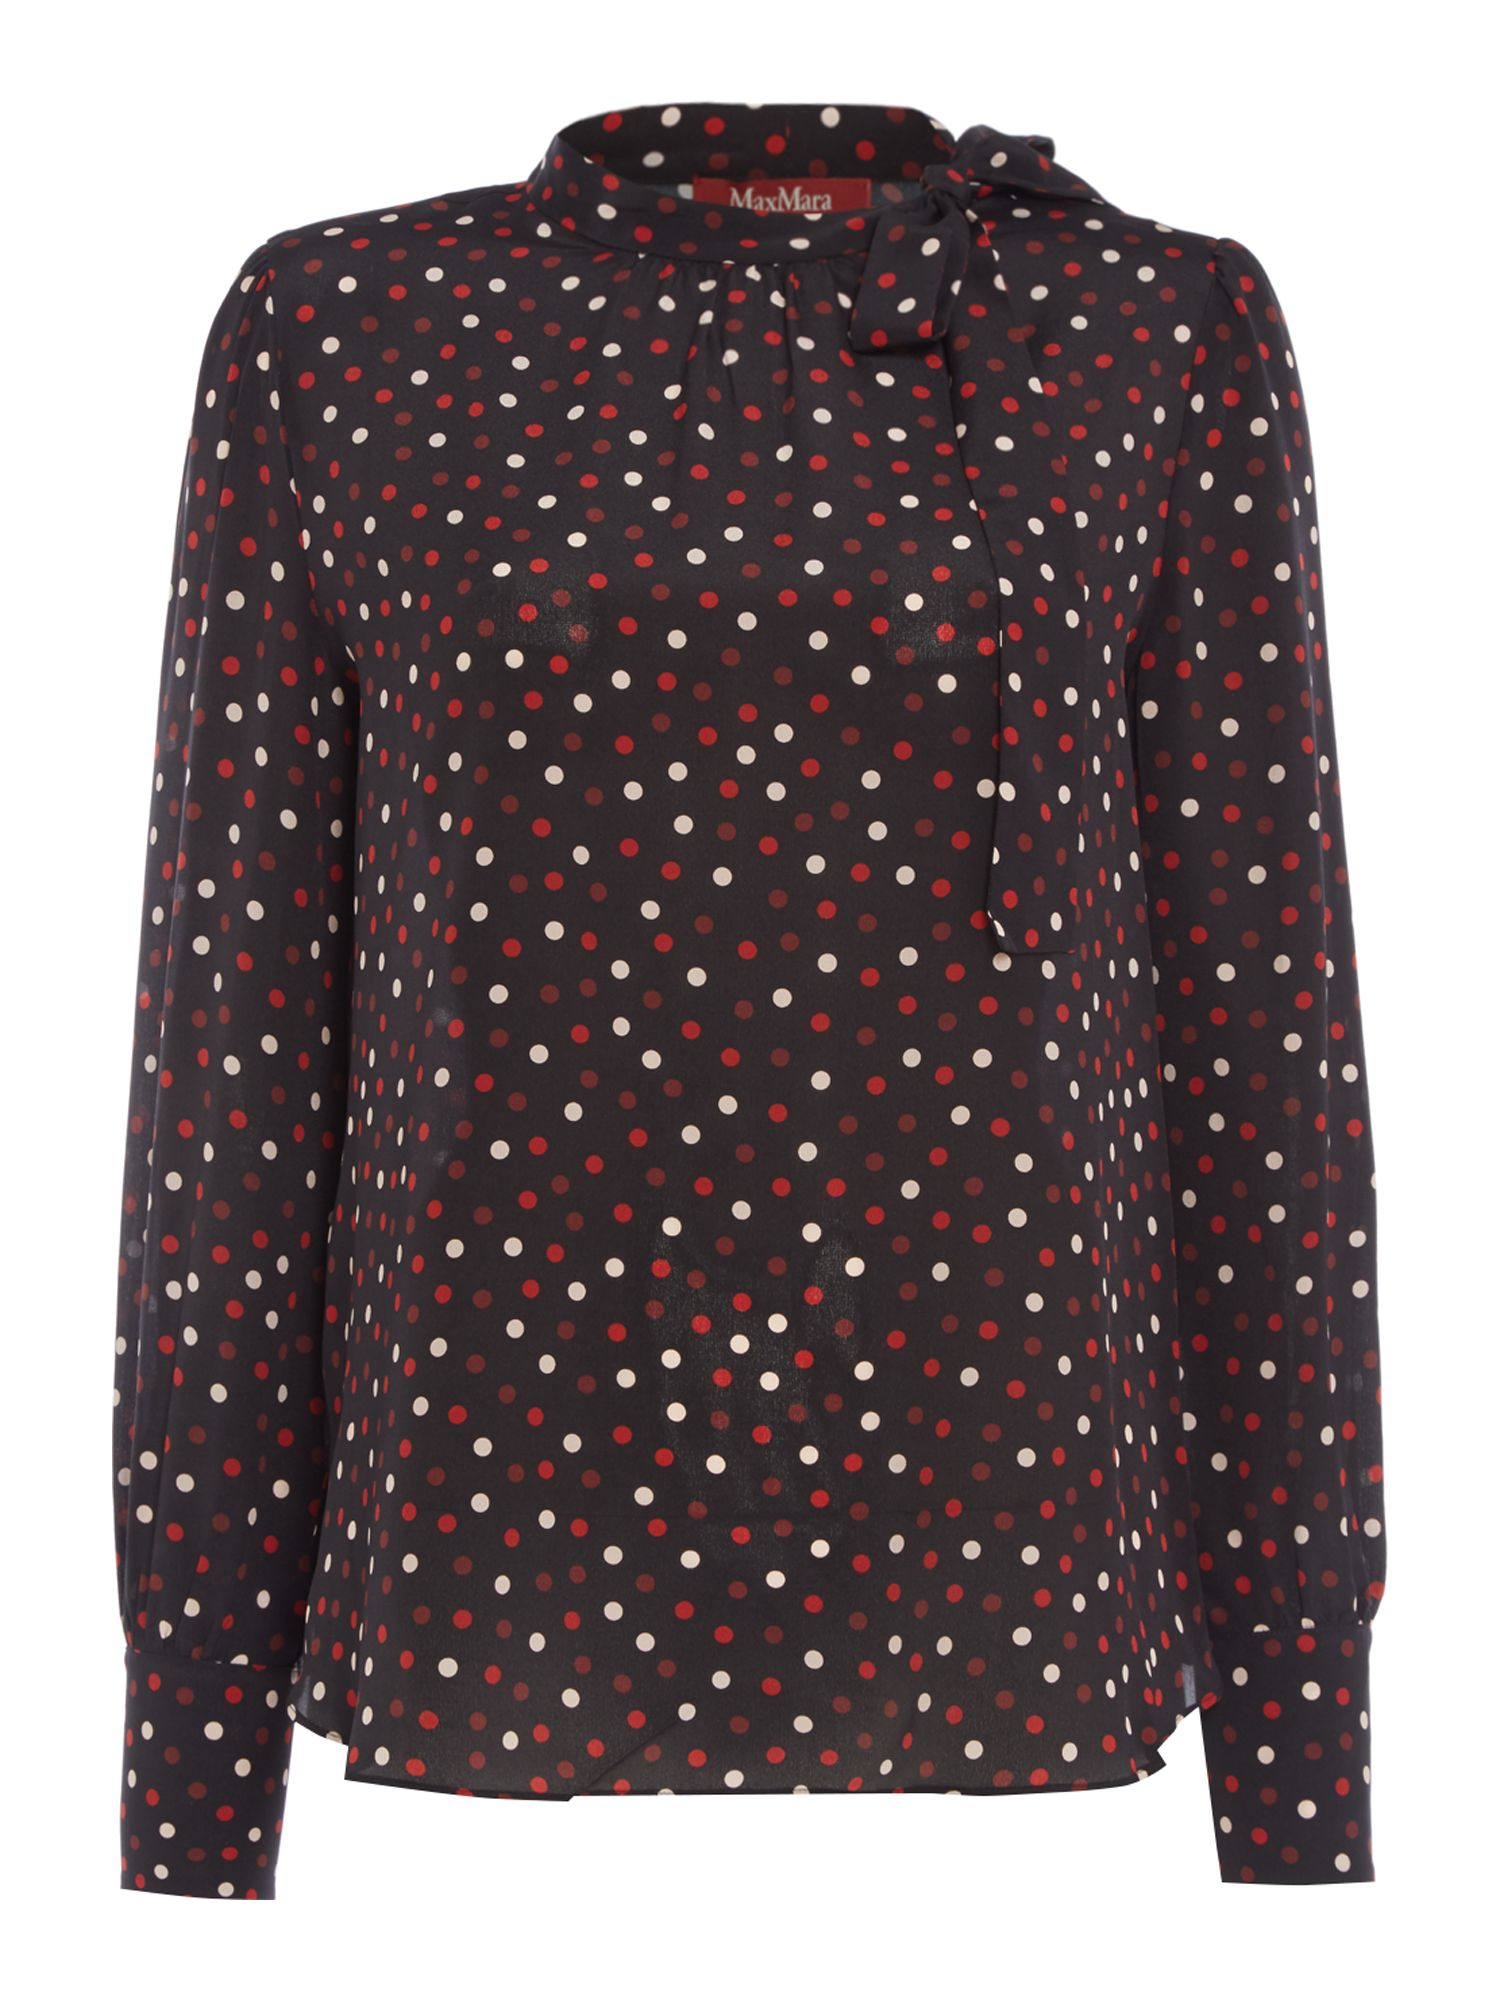 Max Mara Studio Adunco longsleeve tie neck polka dot shirt, Black